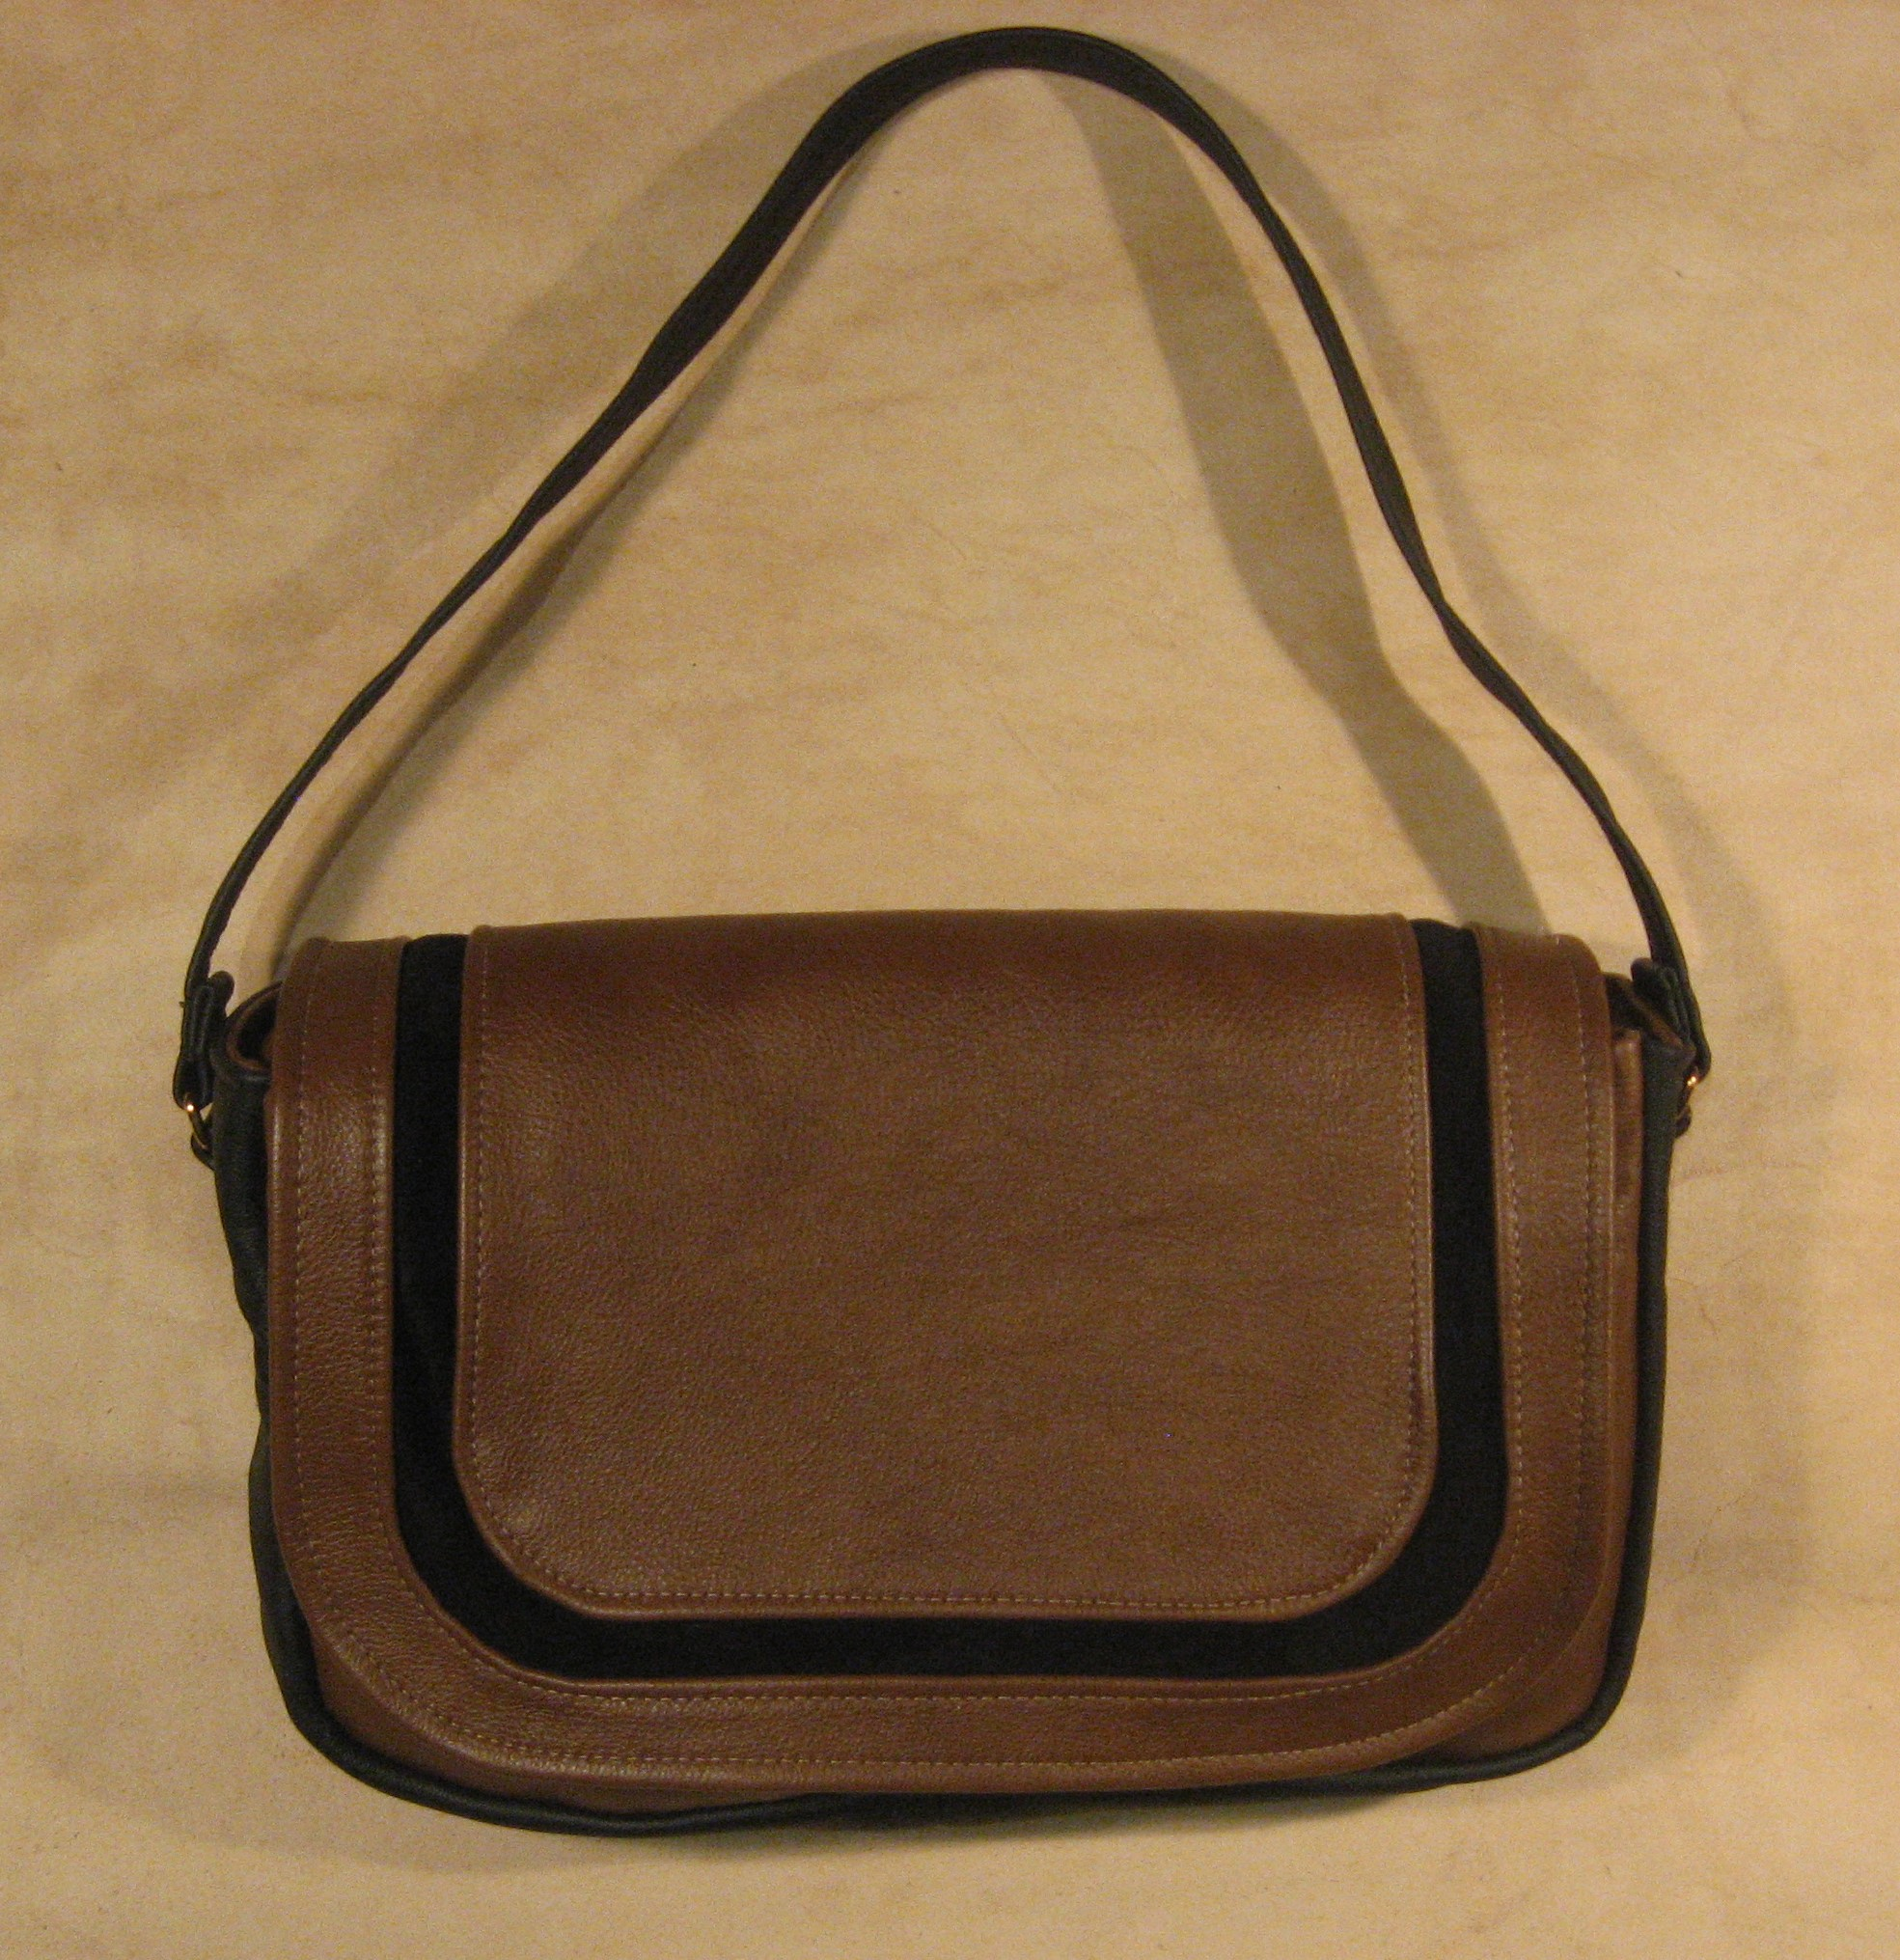 3),Arrowsmith,Flap, BROWN, with Black .JPG